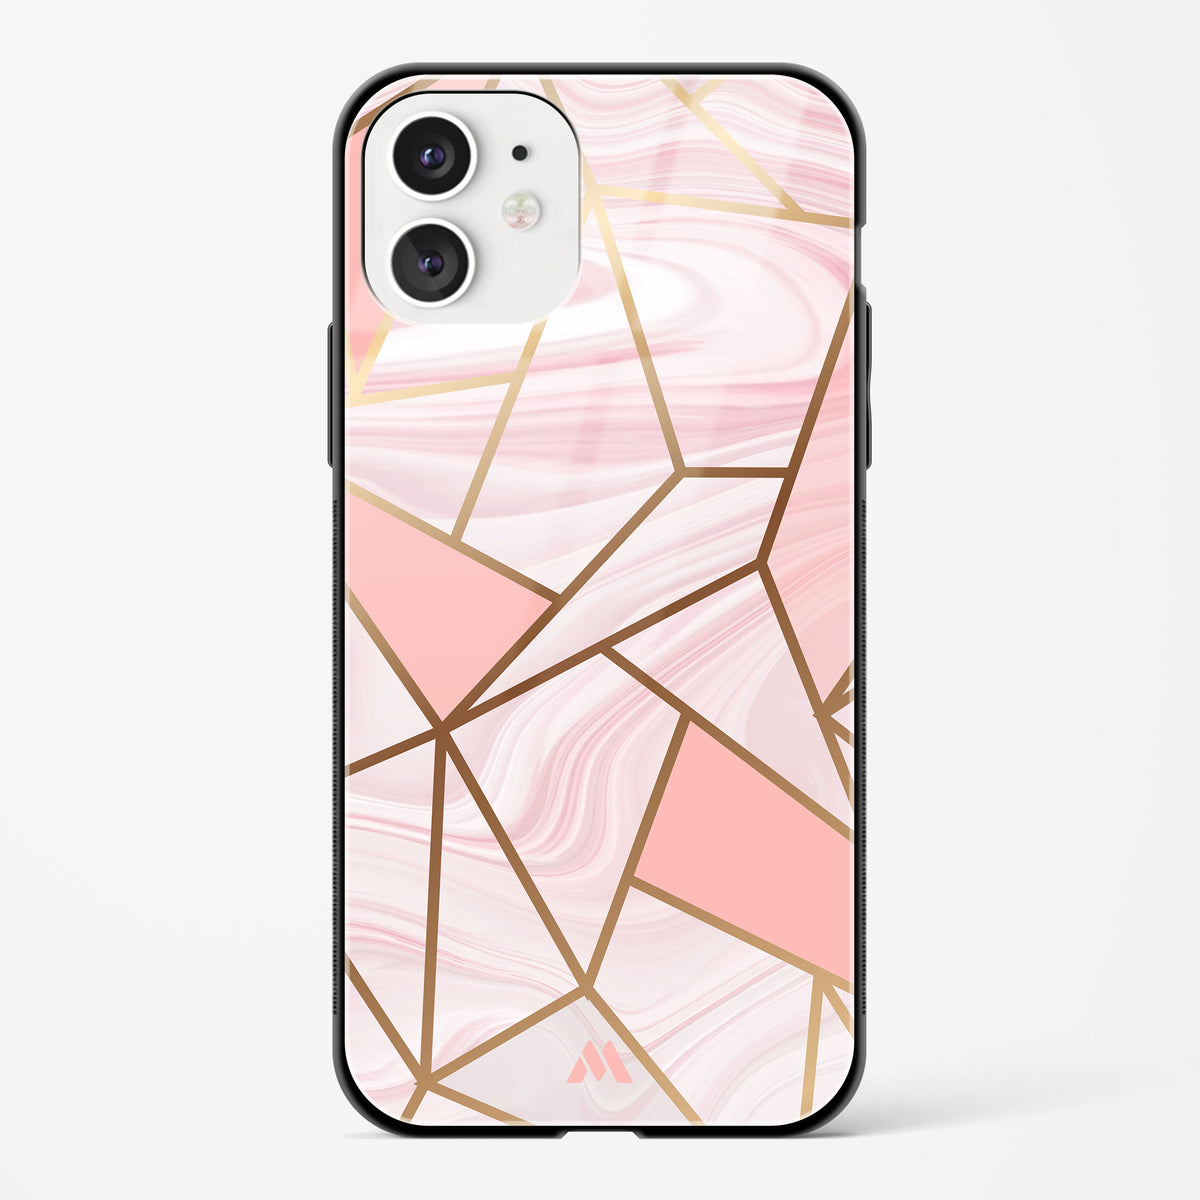 Liquid Marble in Pink Glass Case Phone Cover